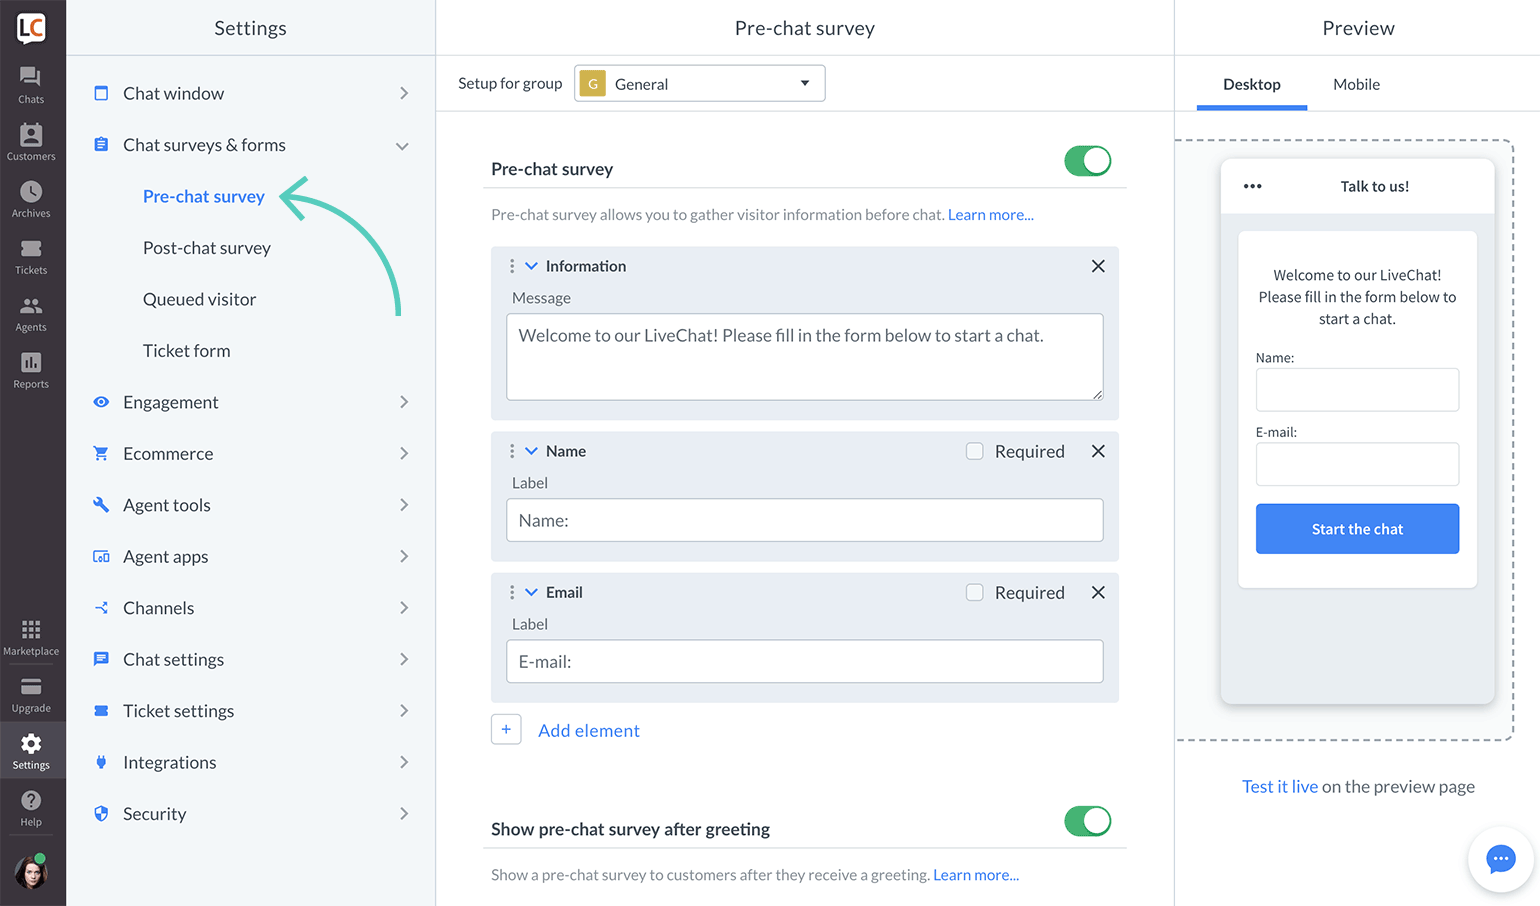 Pre-chat survey settings in LiveChat